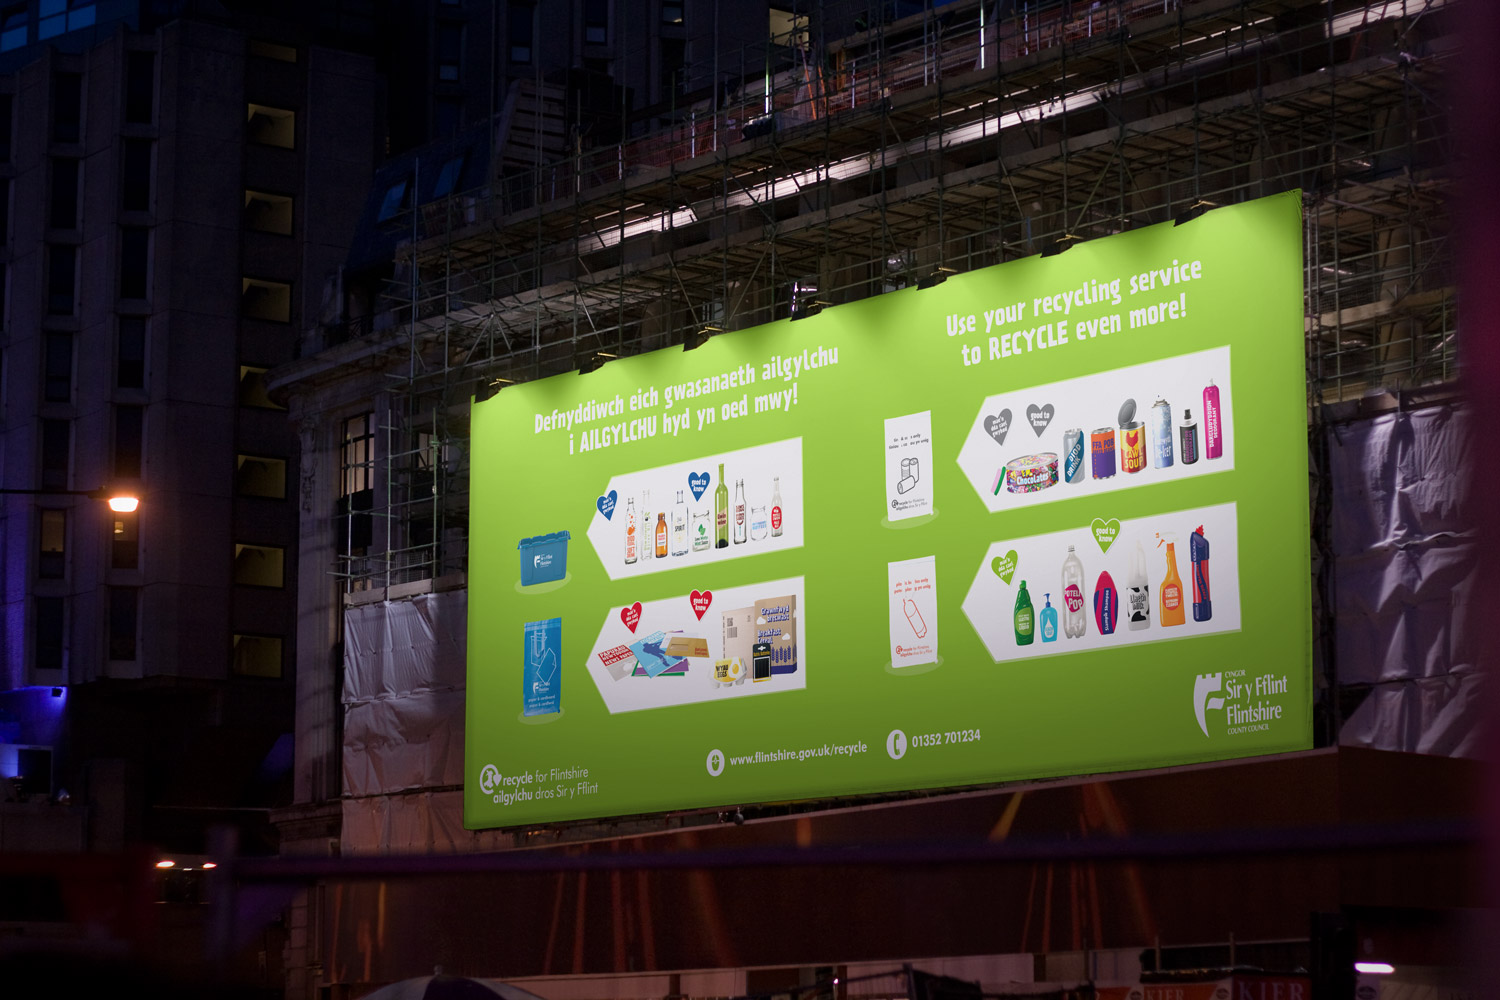 recycling-billboard-get-it-sorted-recycle-now-branding.jpg